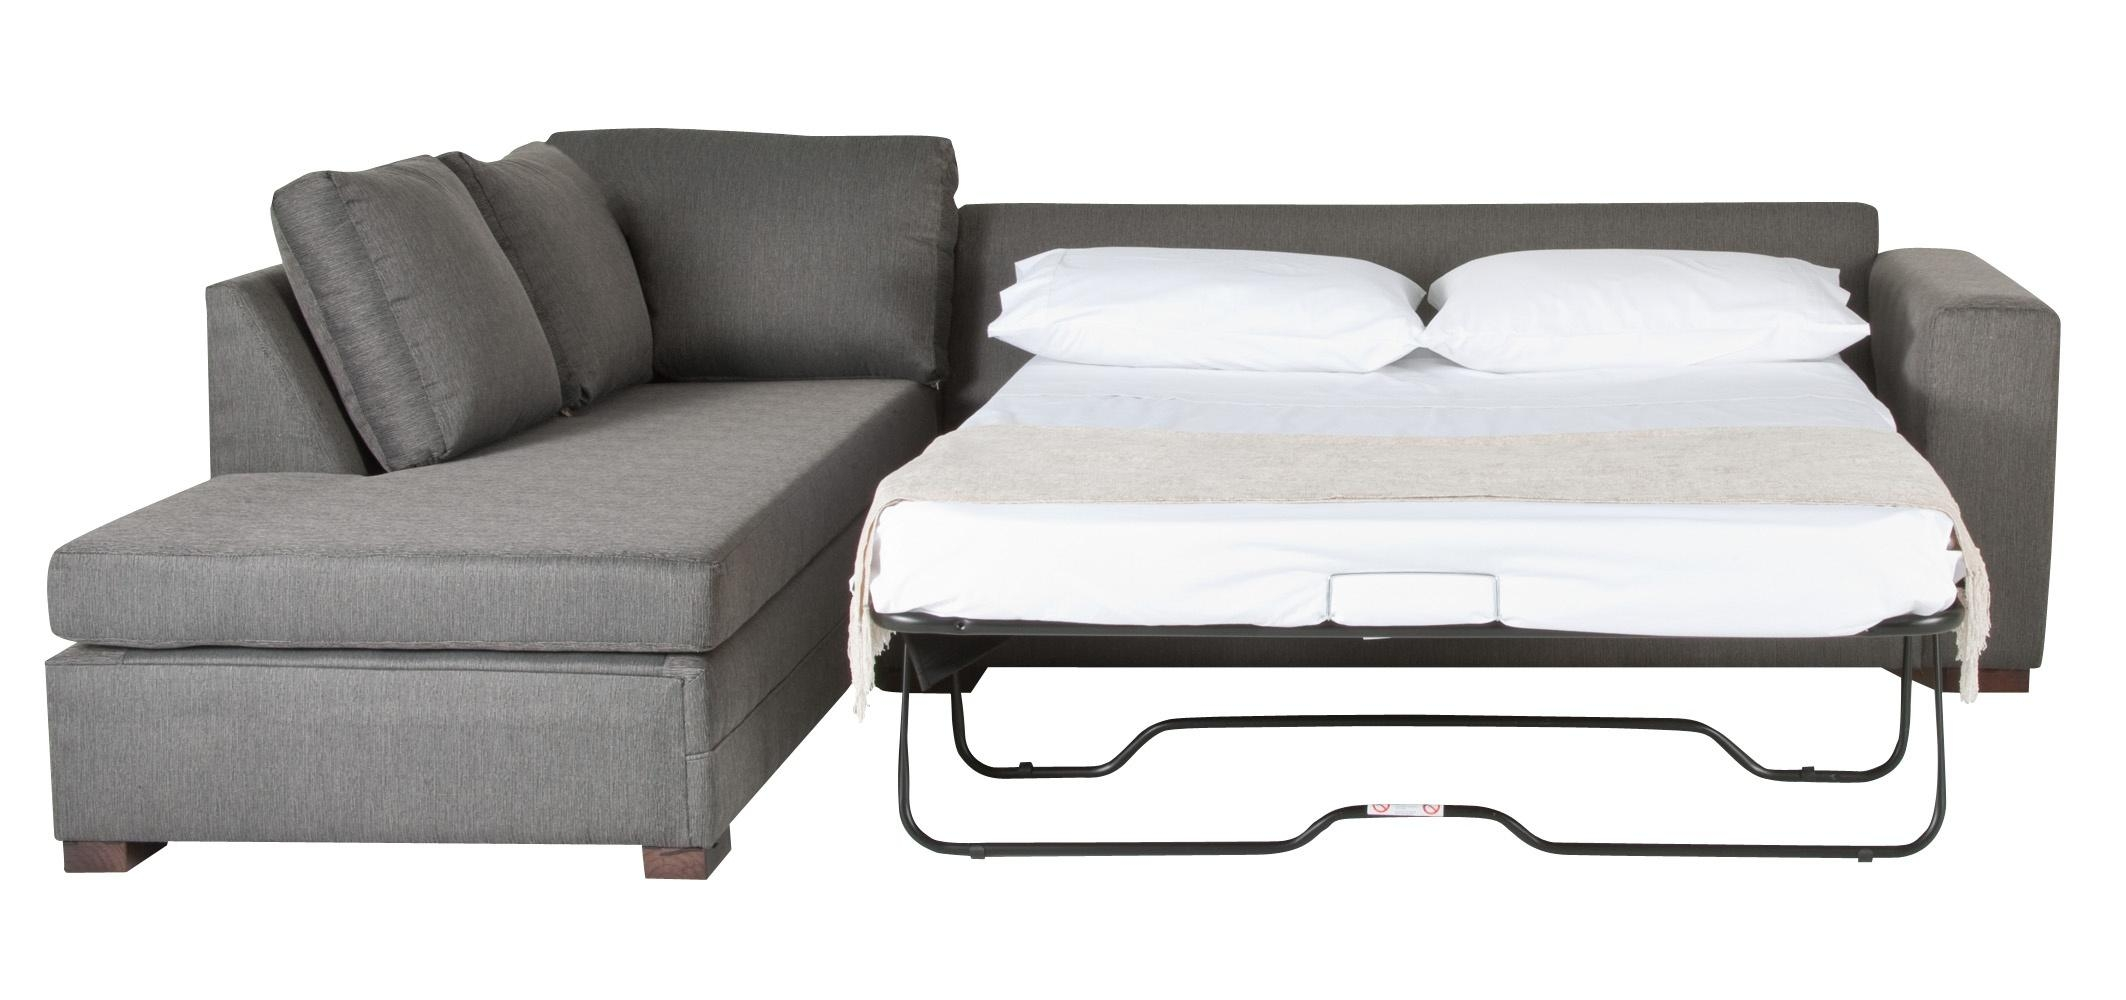 ▻ Sofa : 2 Good Queen Size Pull Out Sofa Bed 77 For Your Pull Out For Queen Size Convertible Sofa Beds (Image 1 of 20)